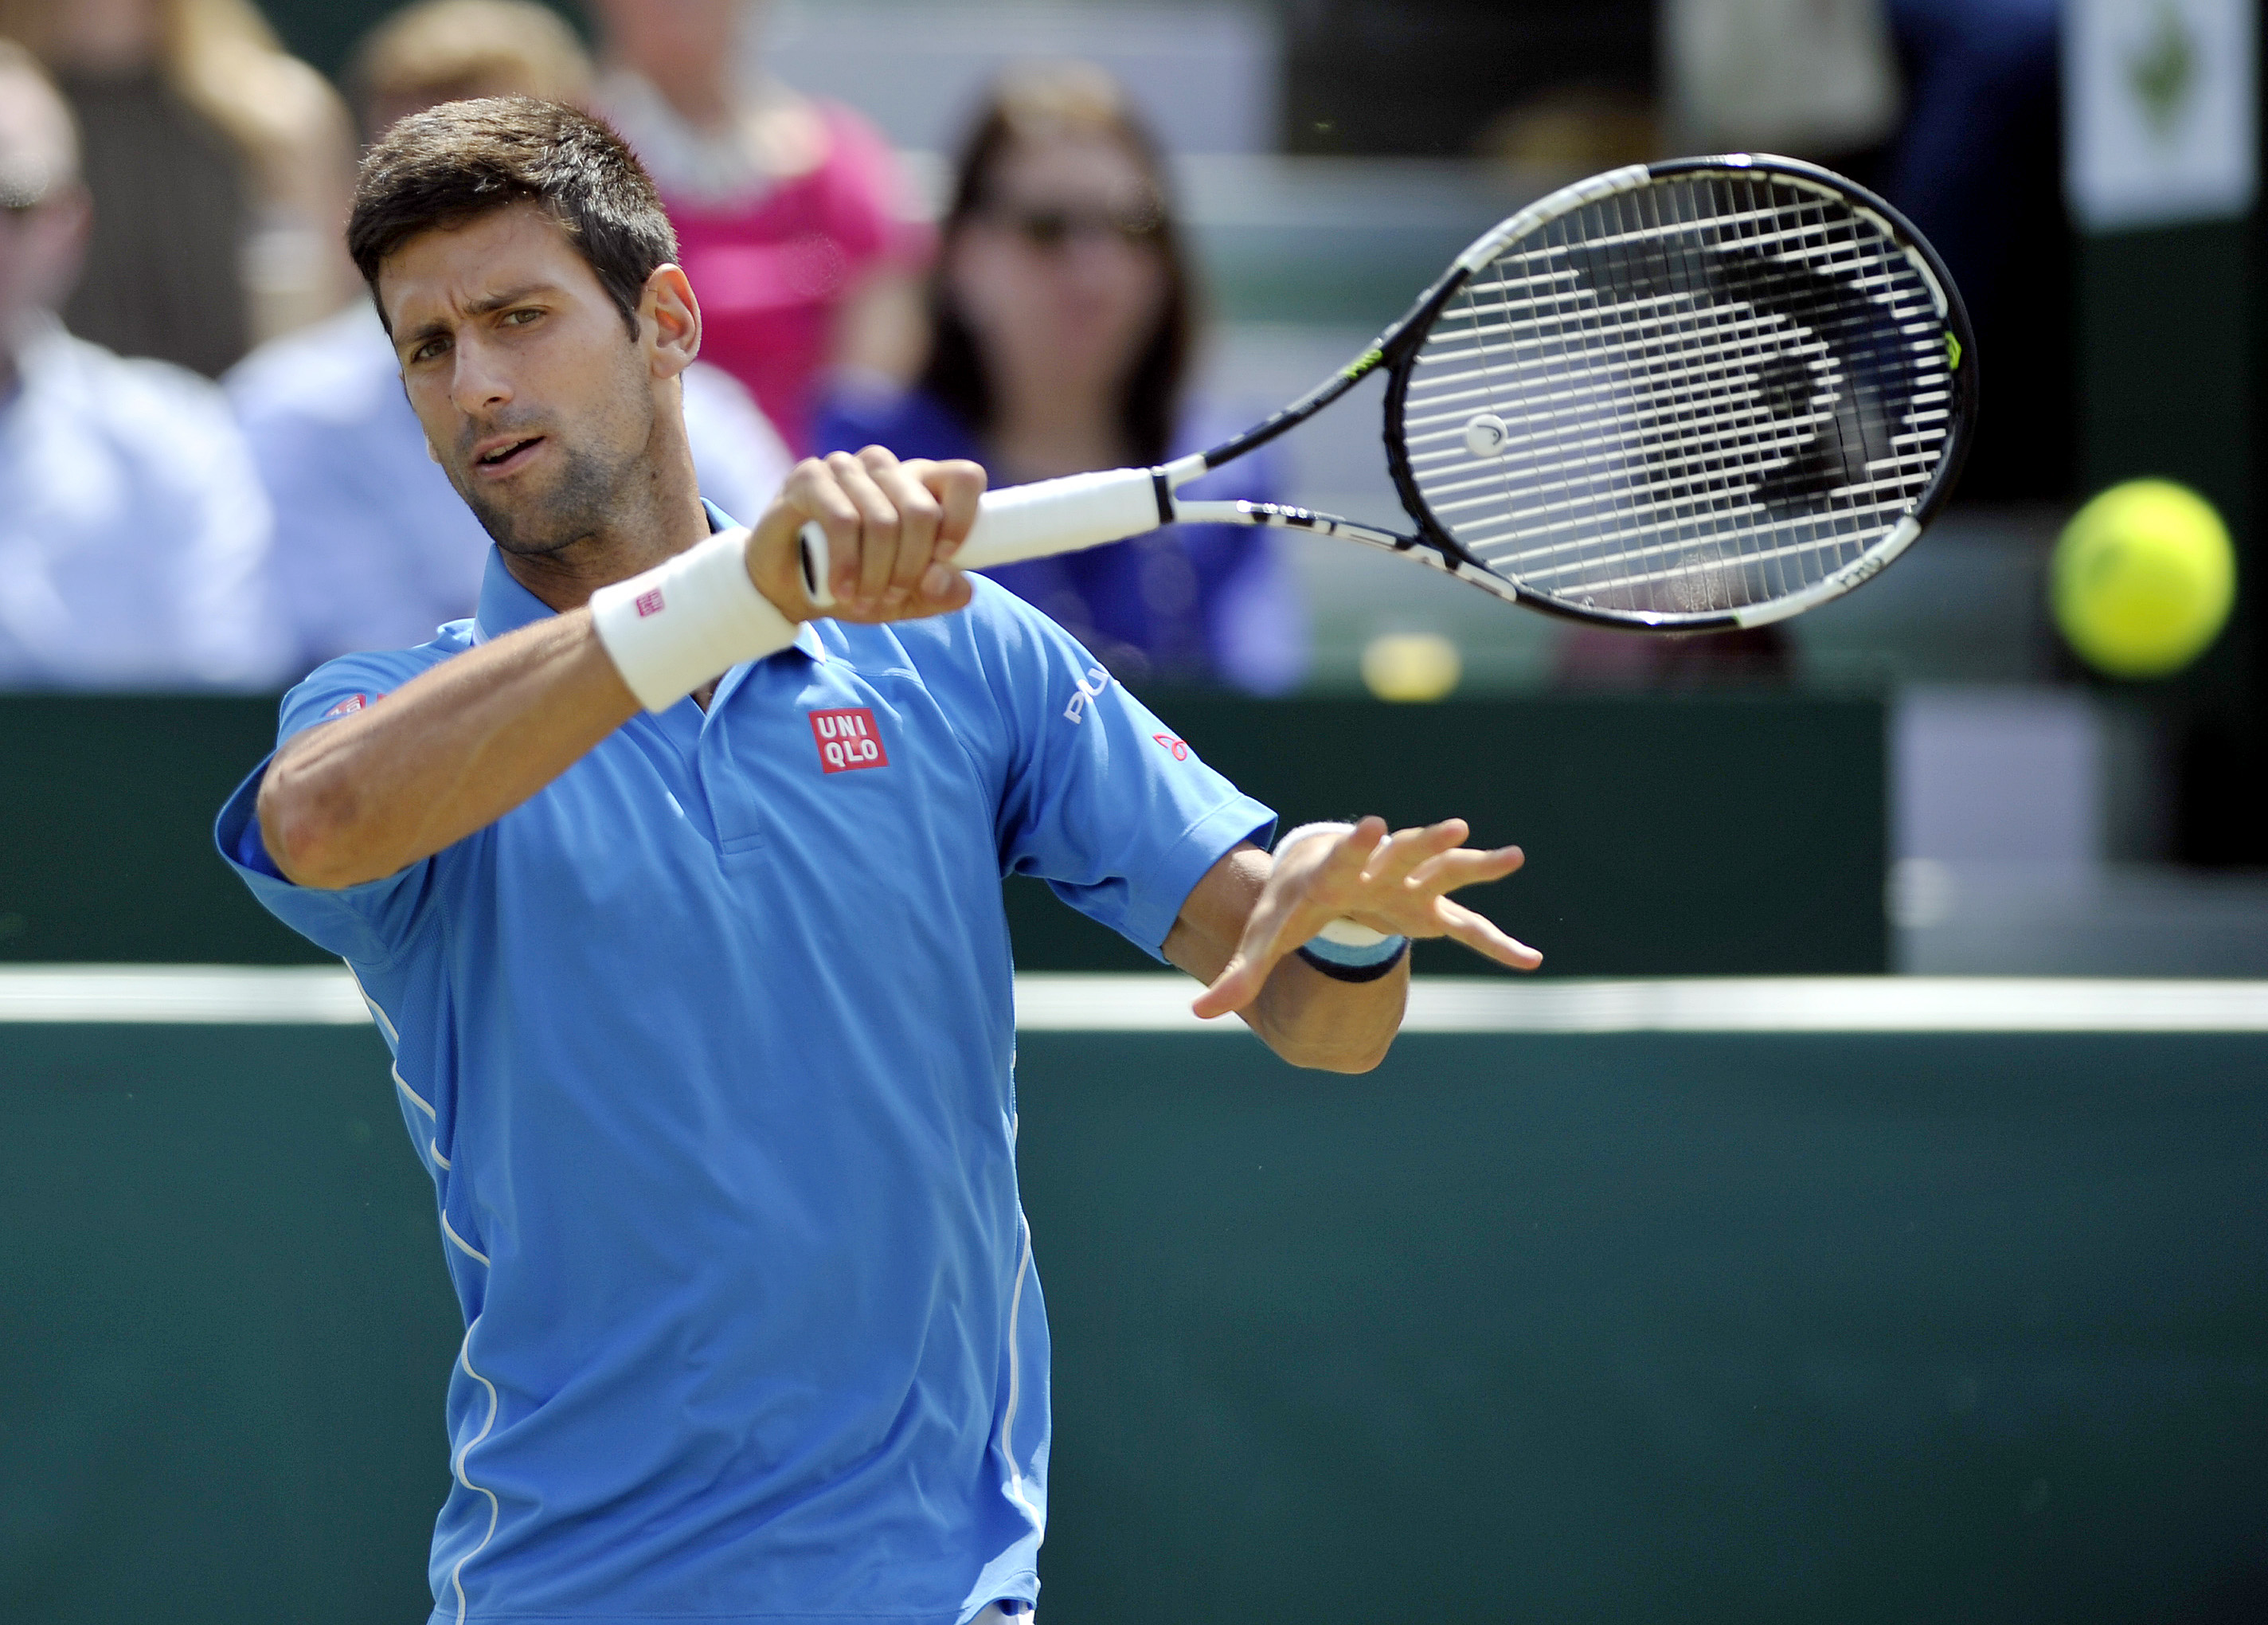 Serbia's Novak Djokovic in action at the Boodles Tennis Challenge in Stoke Park, Buckinghamshire, England, on June 26, 2015